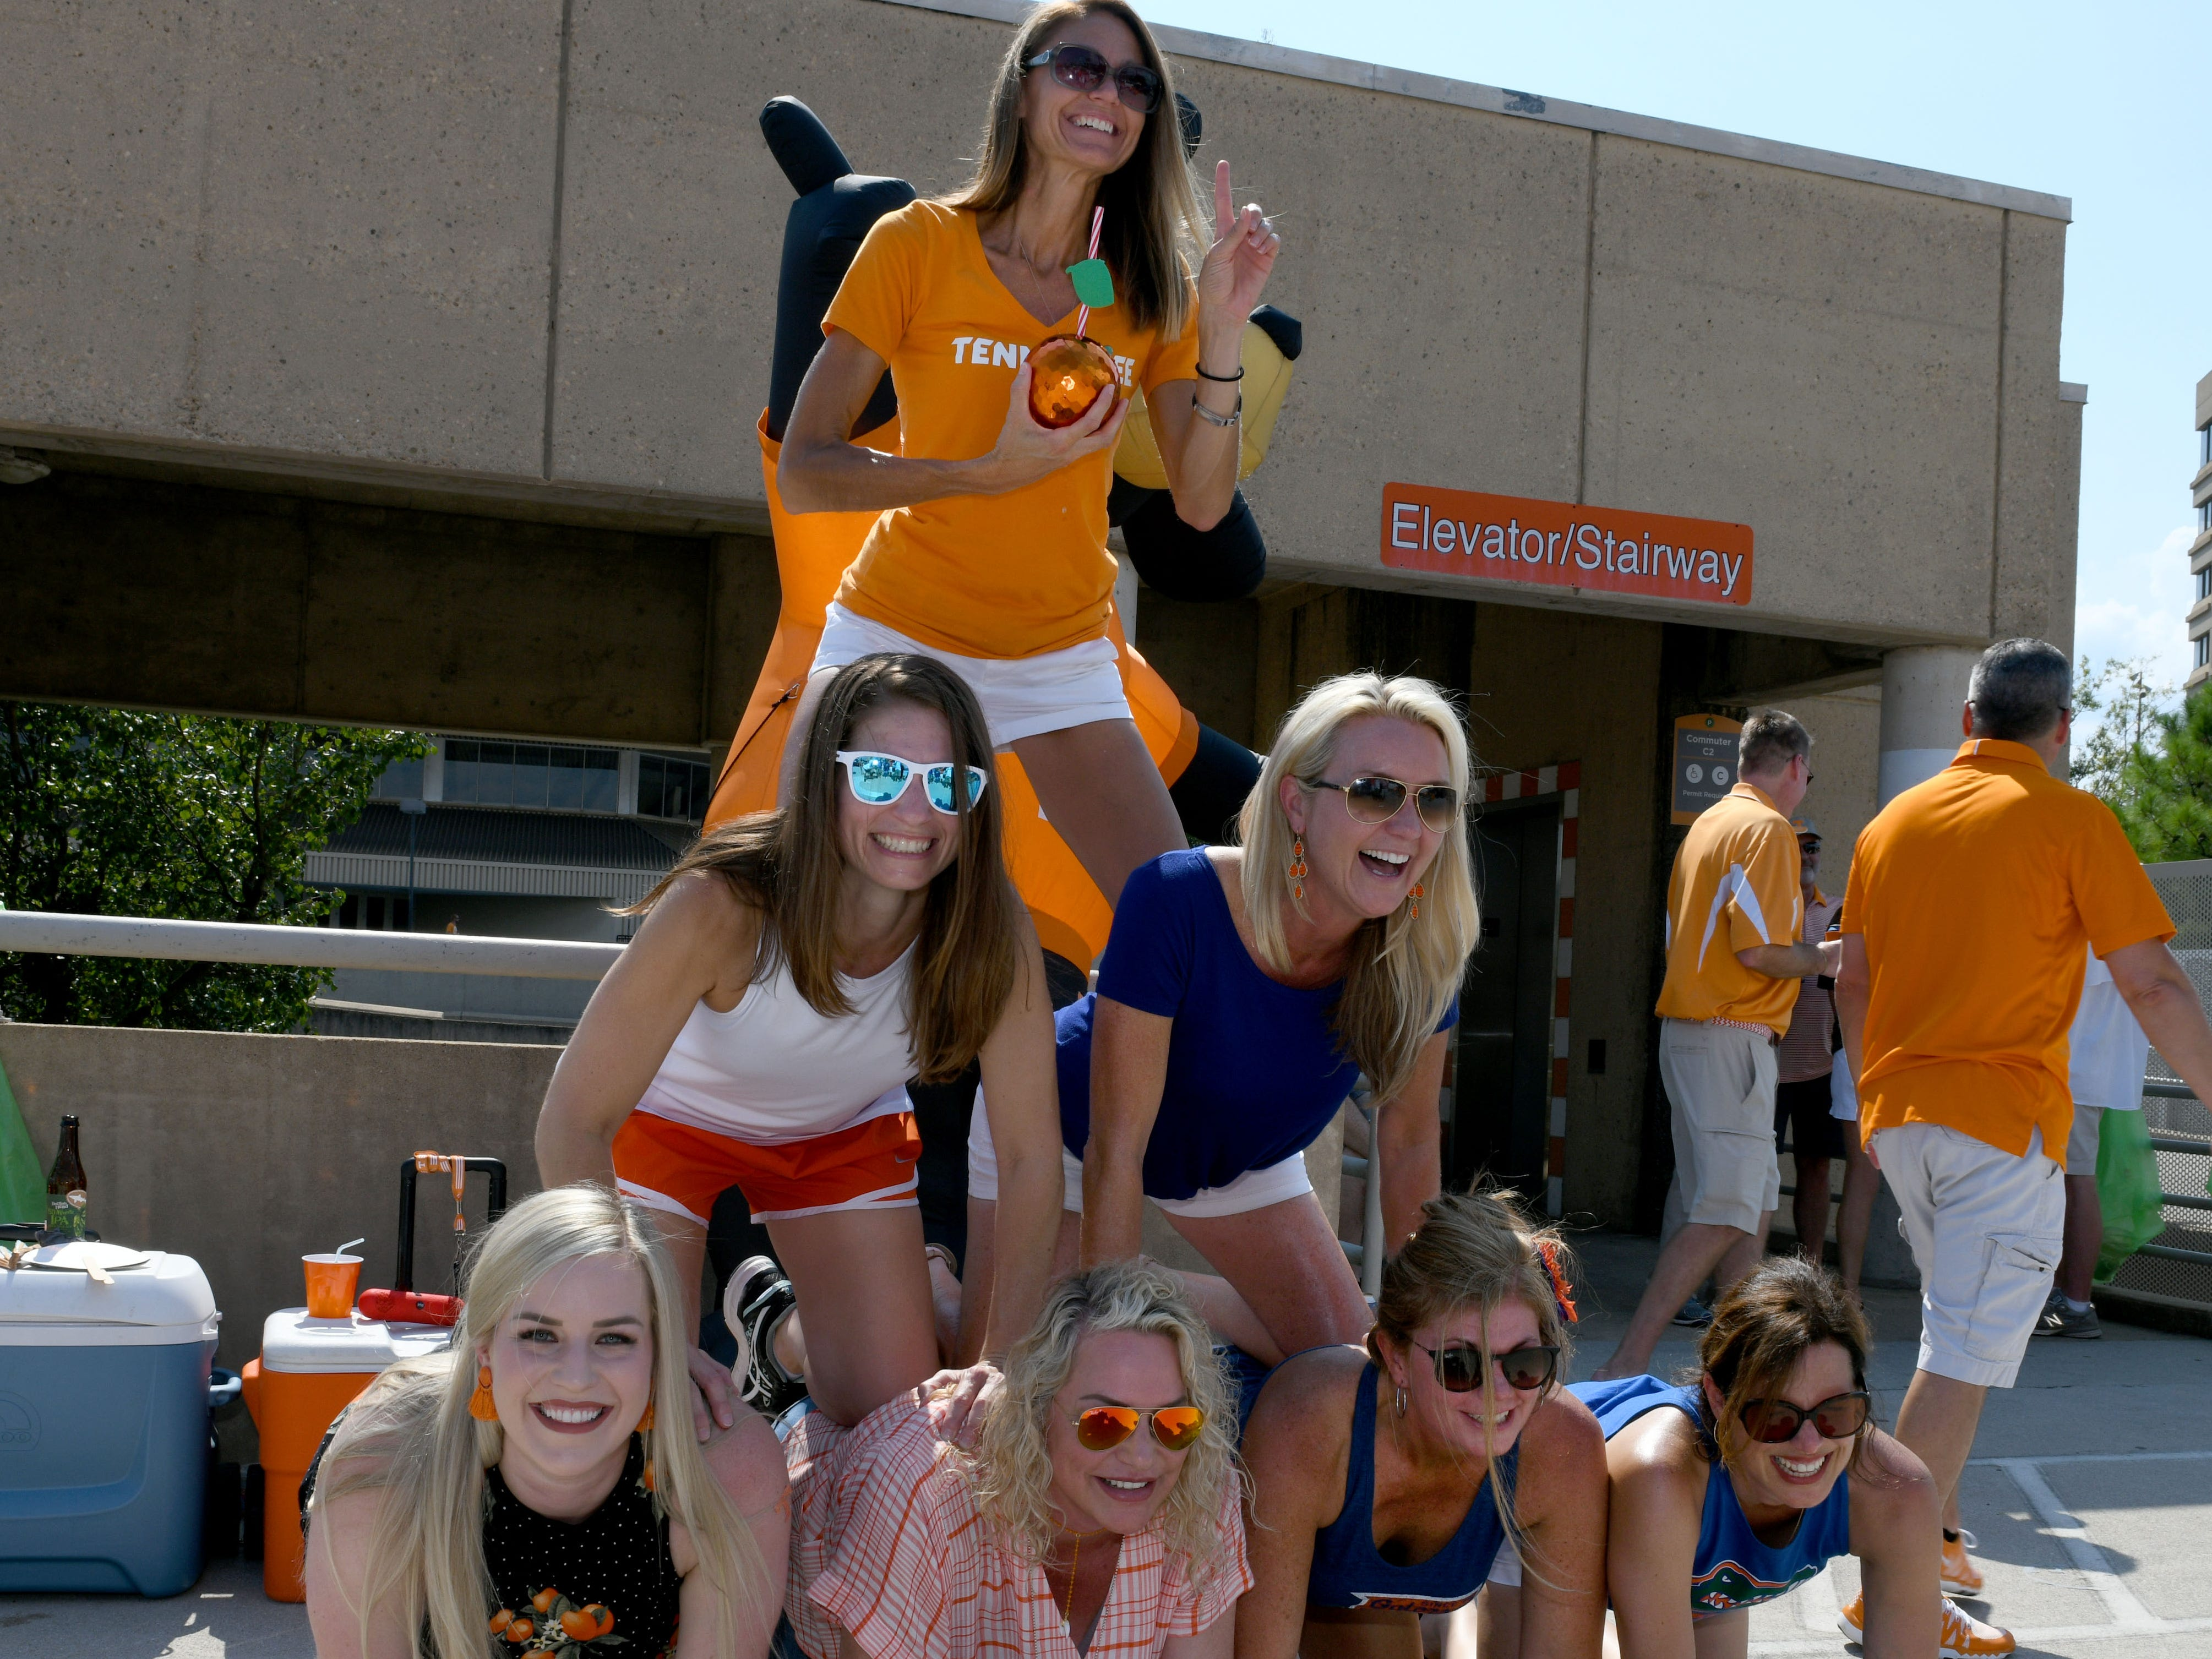 A G10 tailgate group says they form a pyramid each year before the Tennessee vs. Florida game in Neyland Stadium Saturday, September 22, 2018 in Knoxville, Tenn.